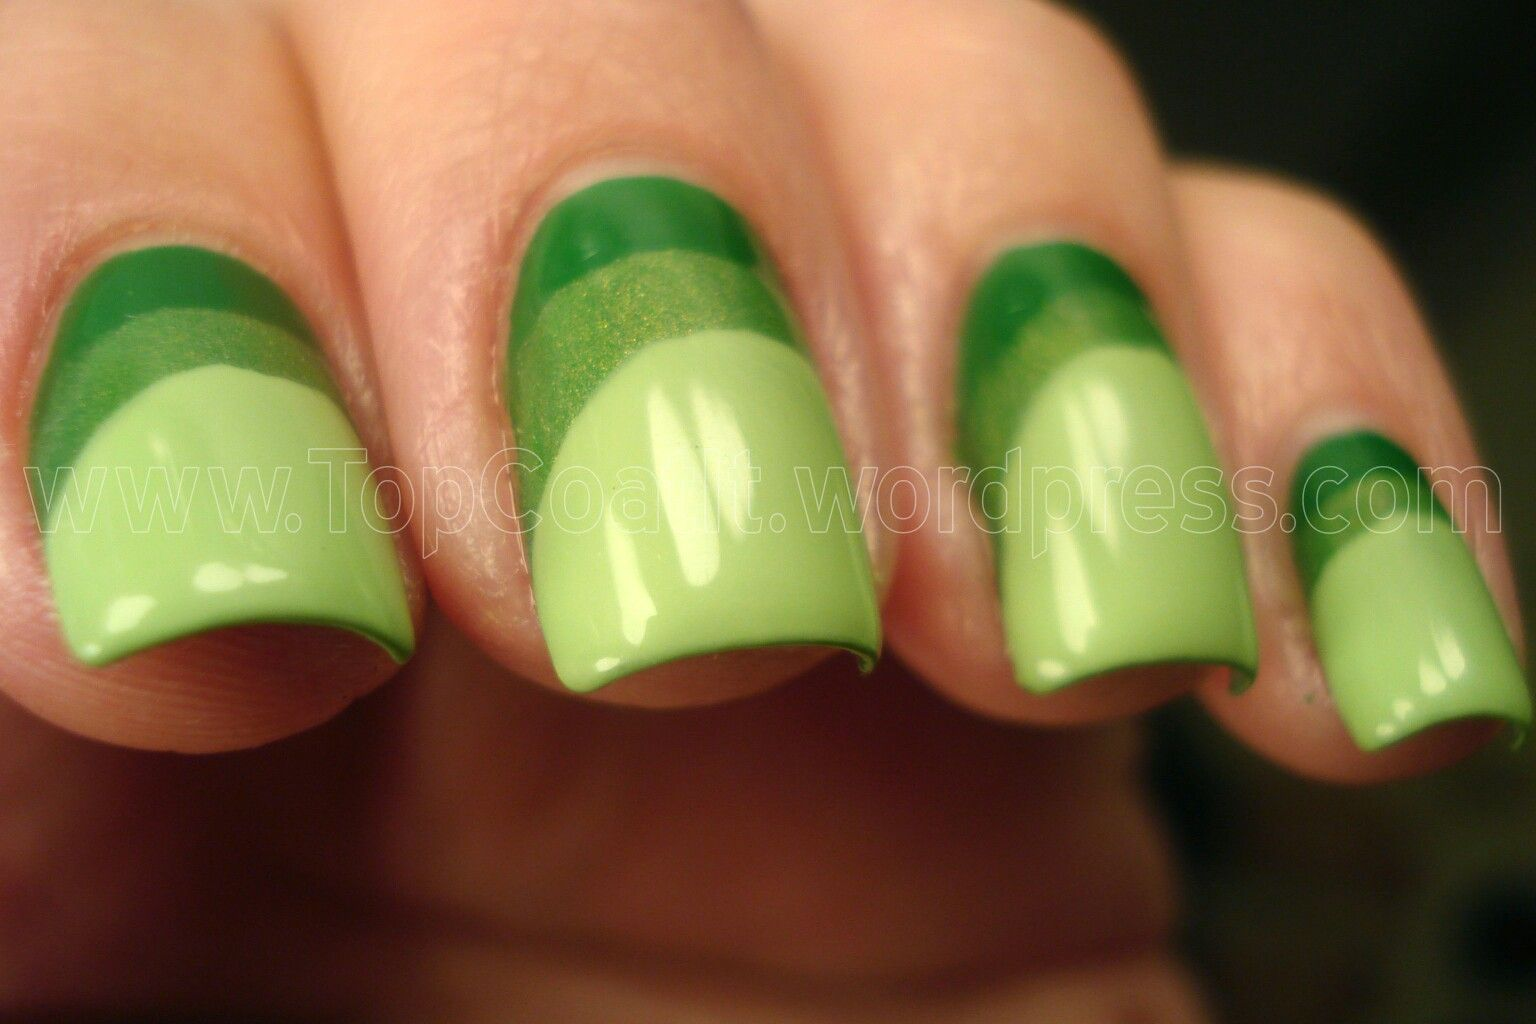 Pin by Zachary Boyles on Green Nail Art | Pinterest | Green nail art ...